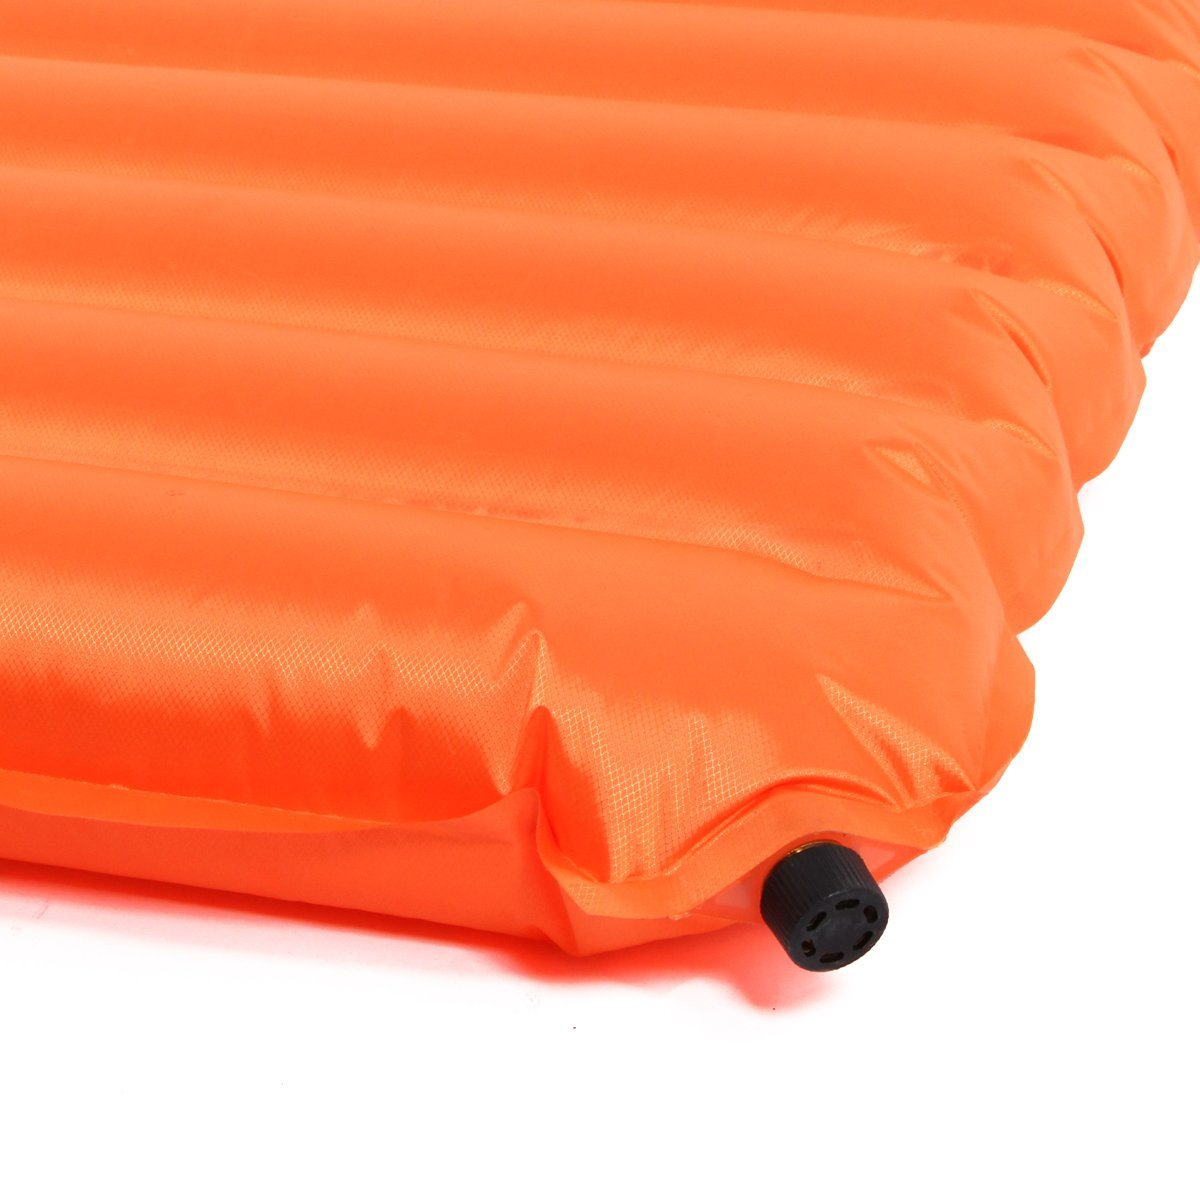 Recharge Sleeping Pad - Ultralight, Insulated Air Pad